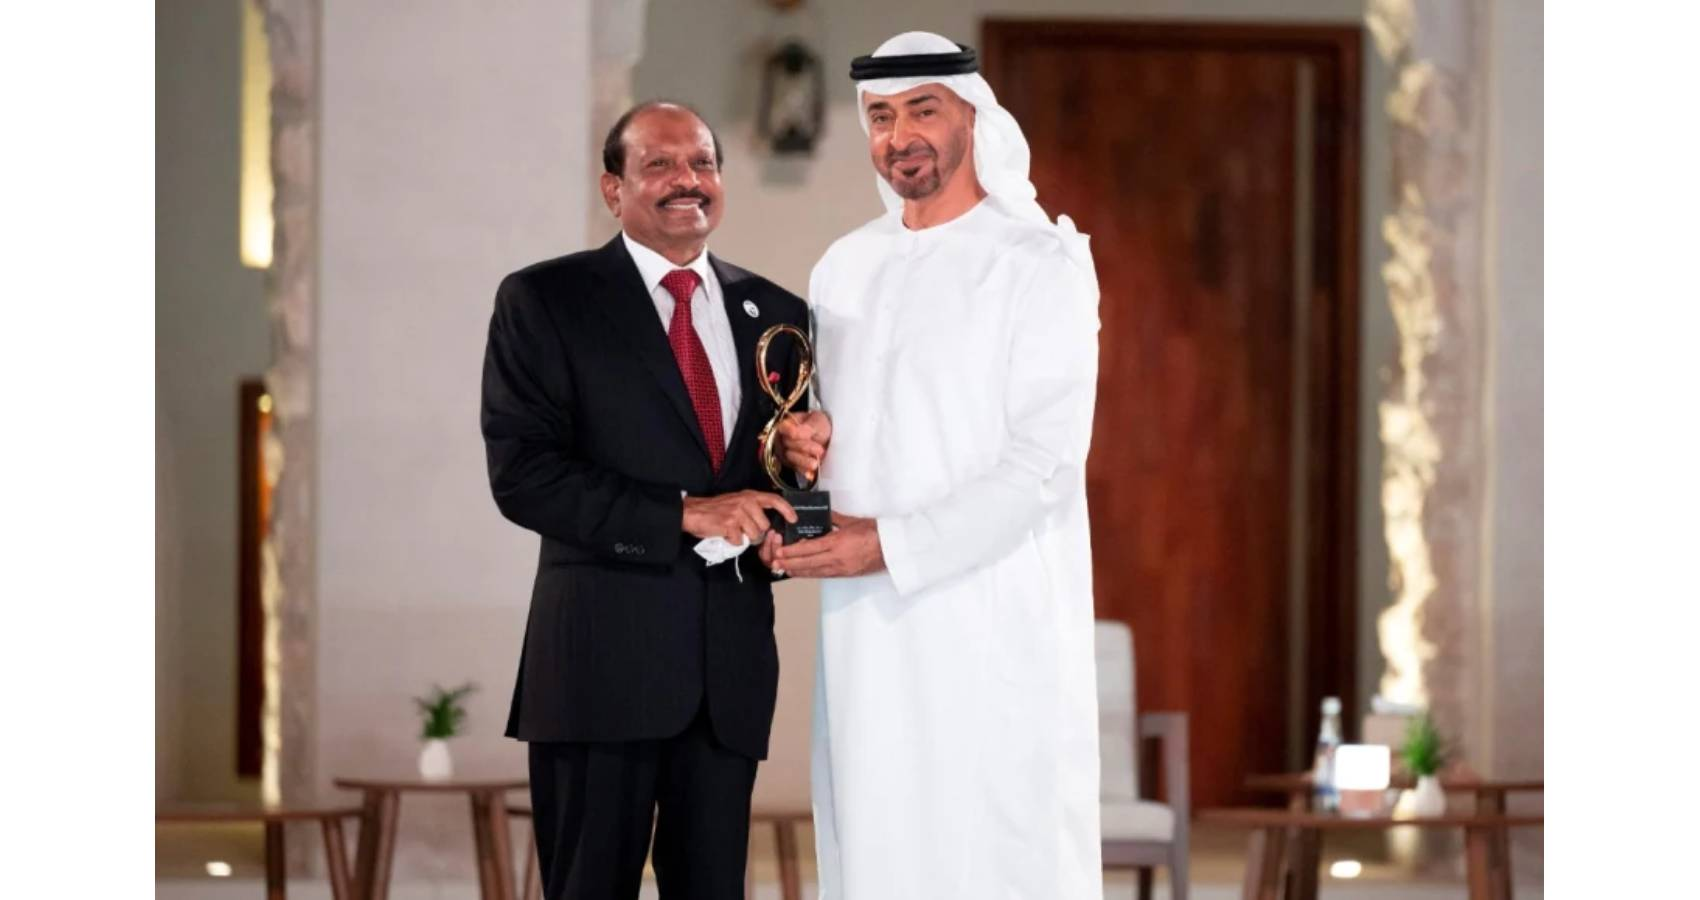 NRI Appointed As Vice-Chairman Of Abu Dhabi Chamber Of Commerce